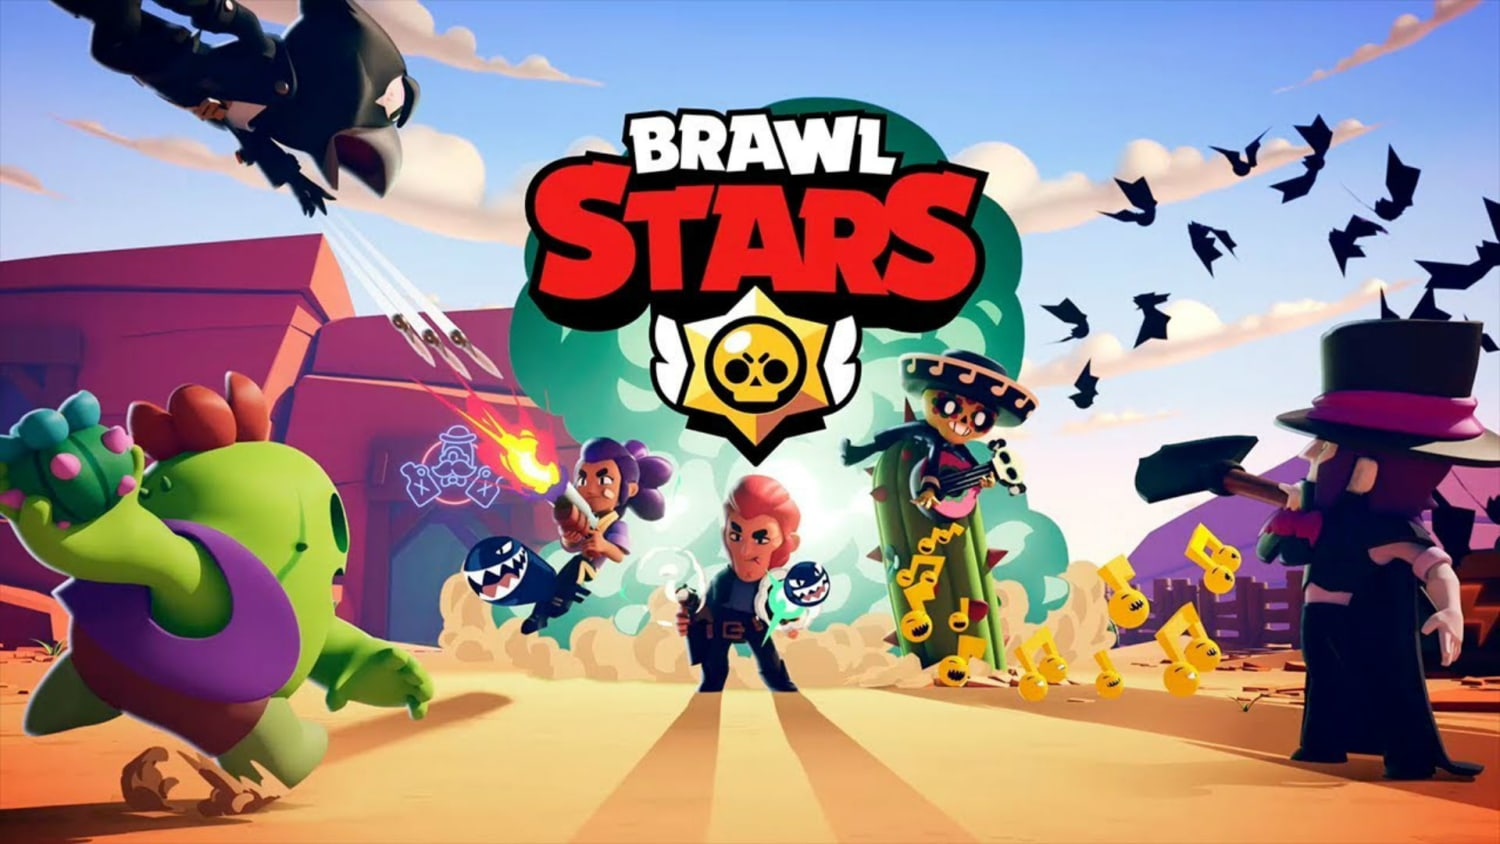 How to play Brawl Stars: 2020 playing guide